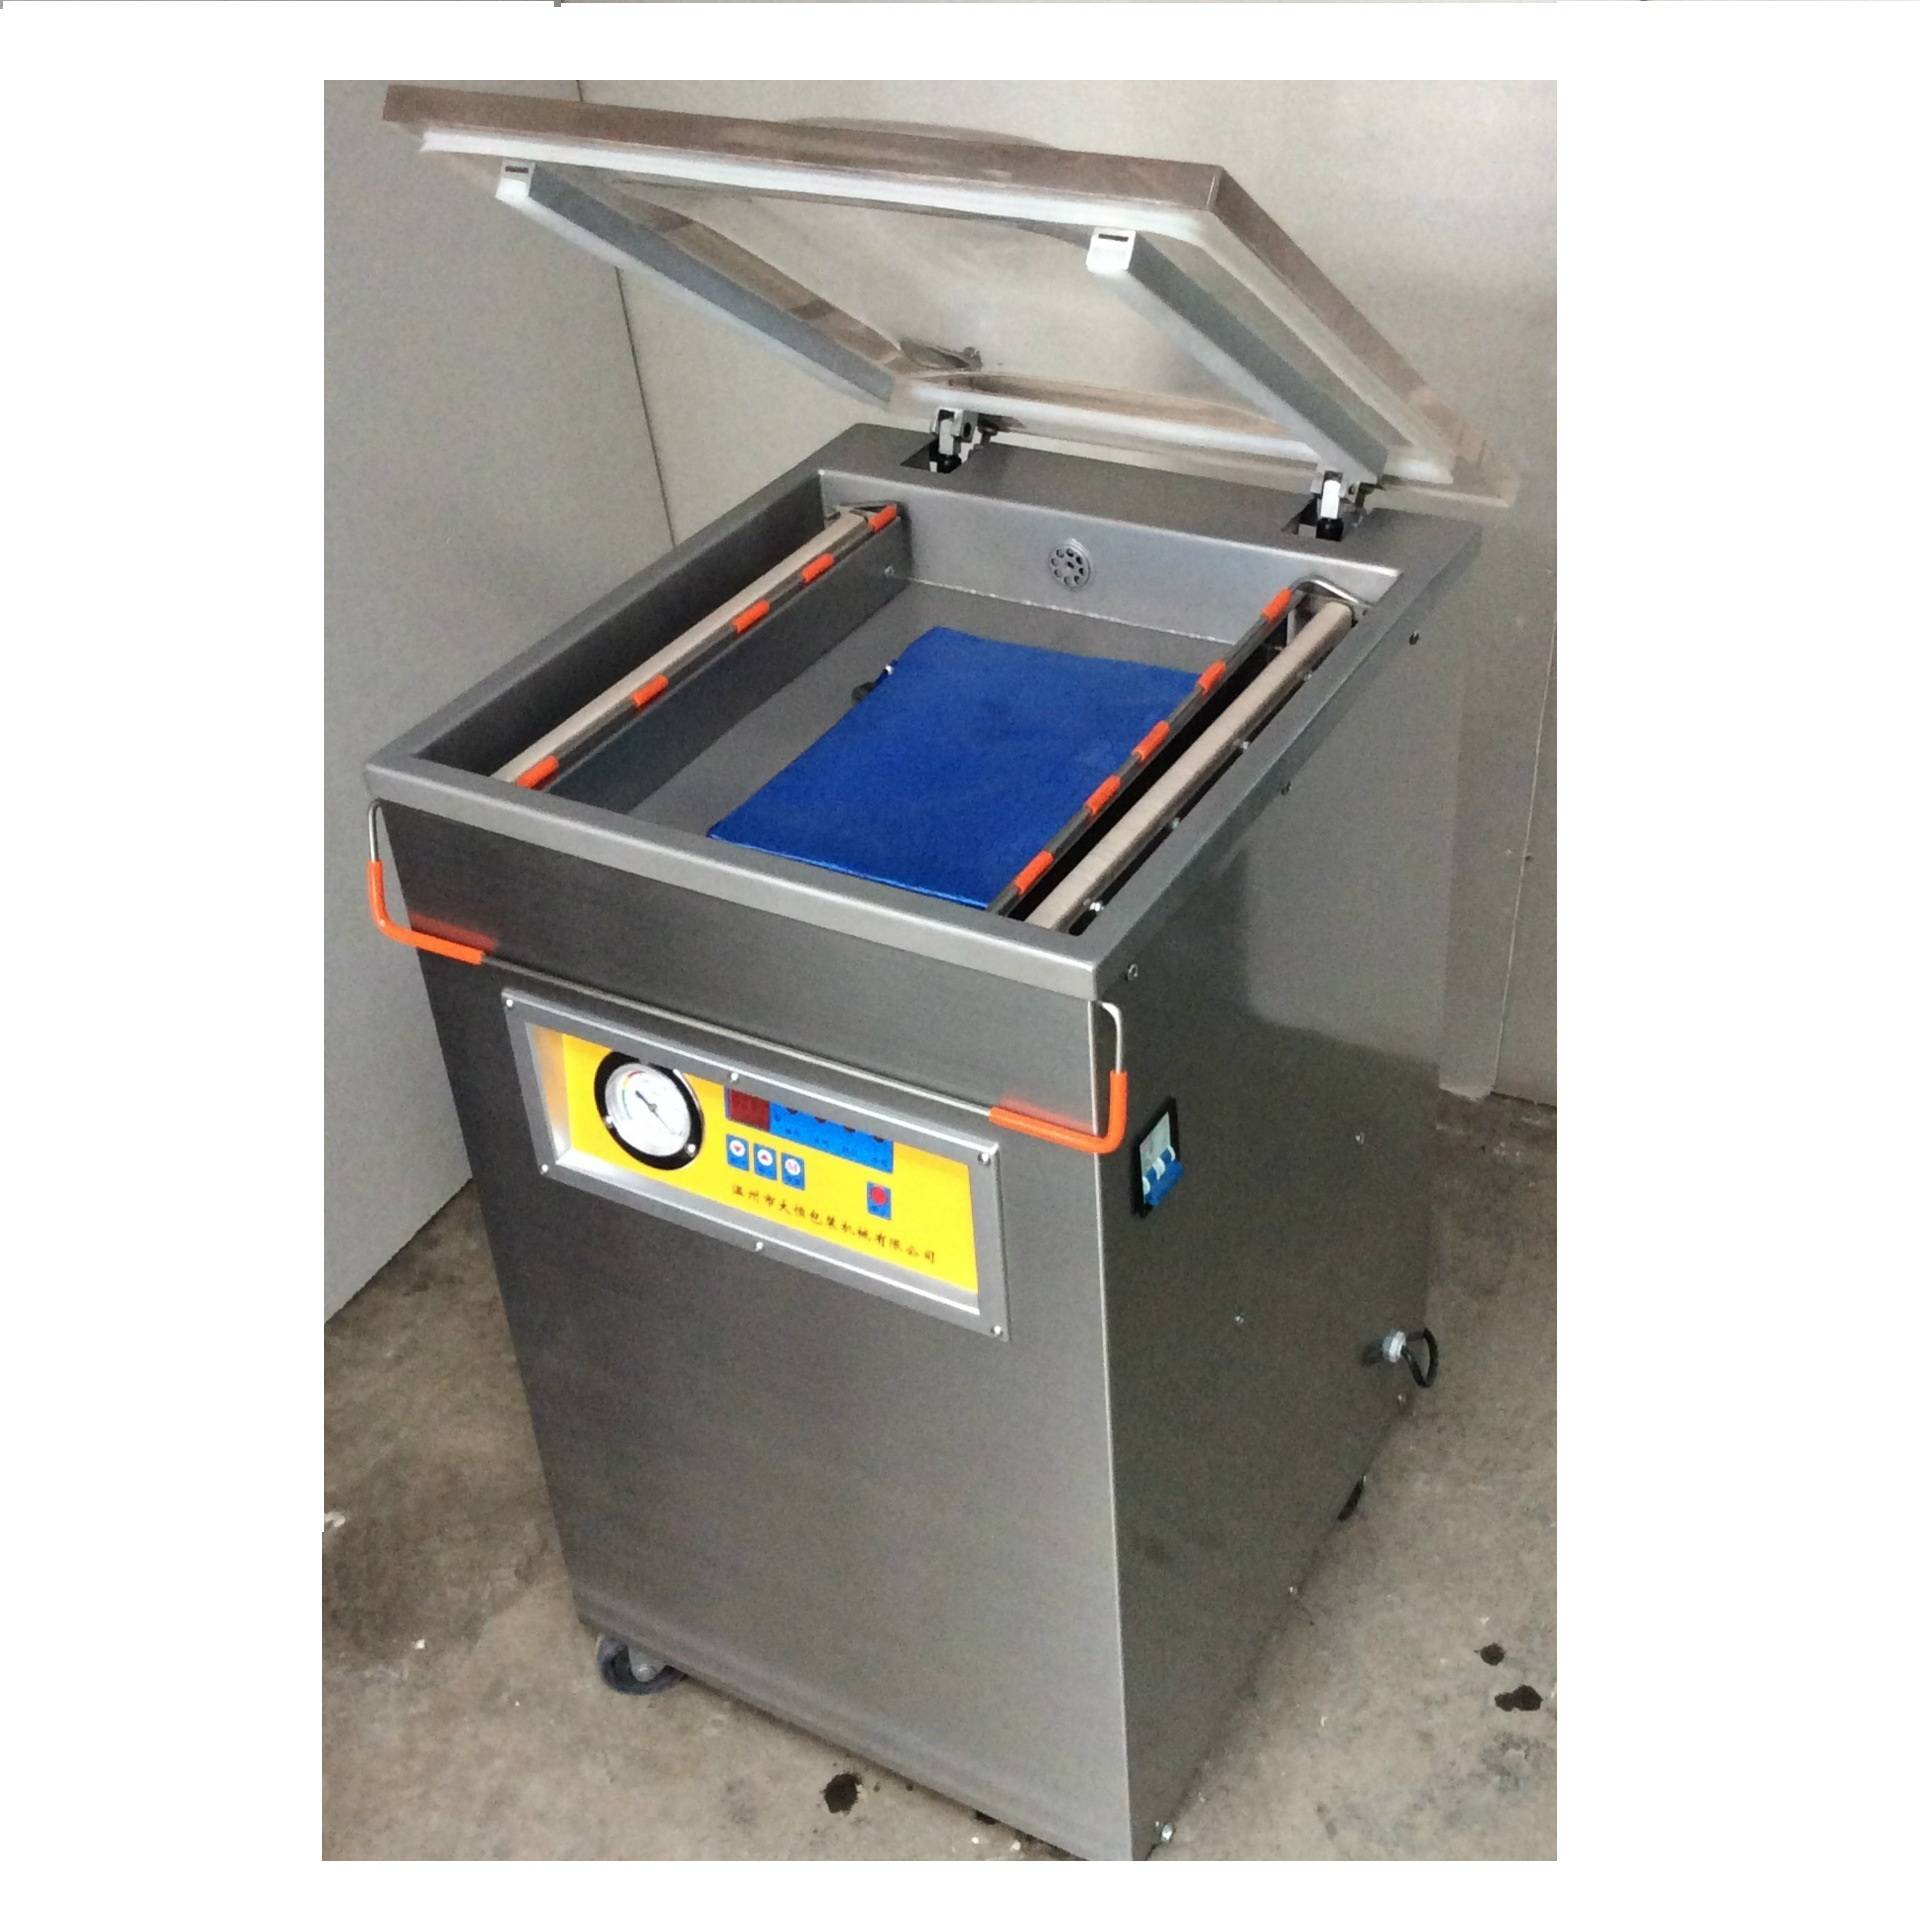 DZ-400 vacuum packing machine